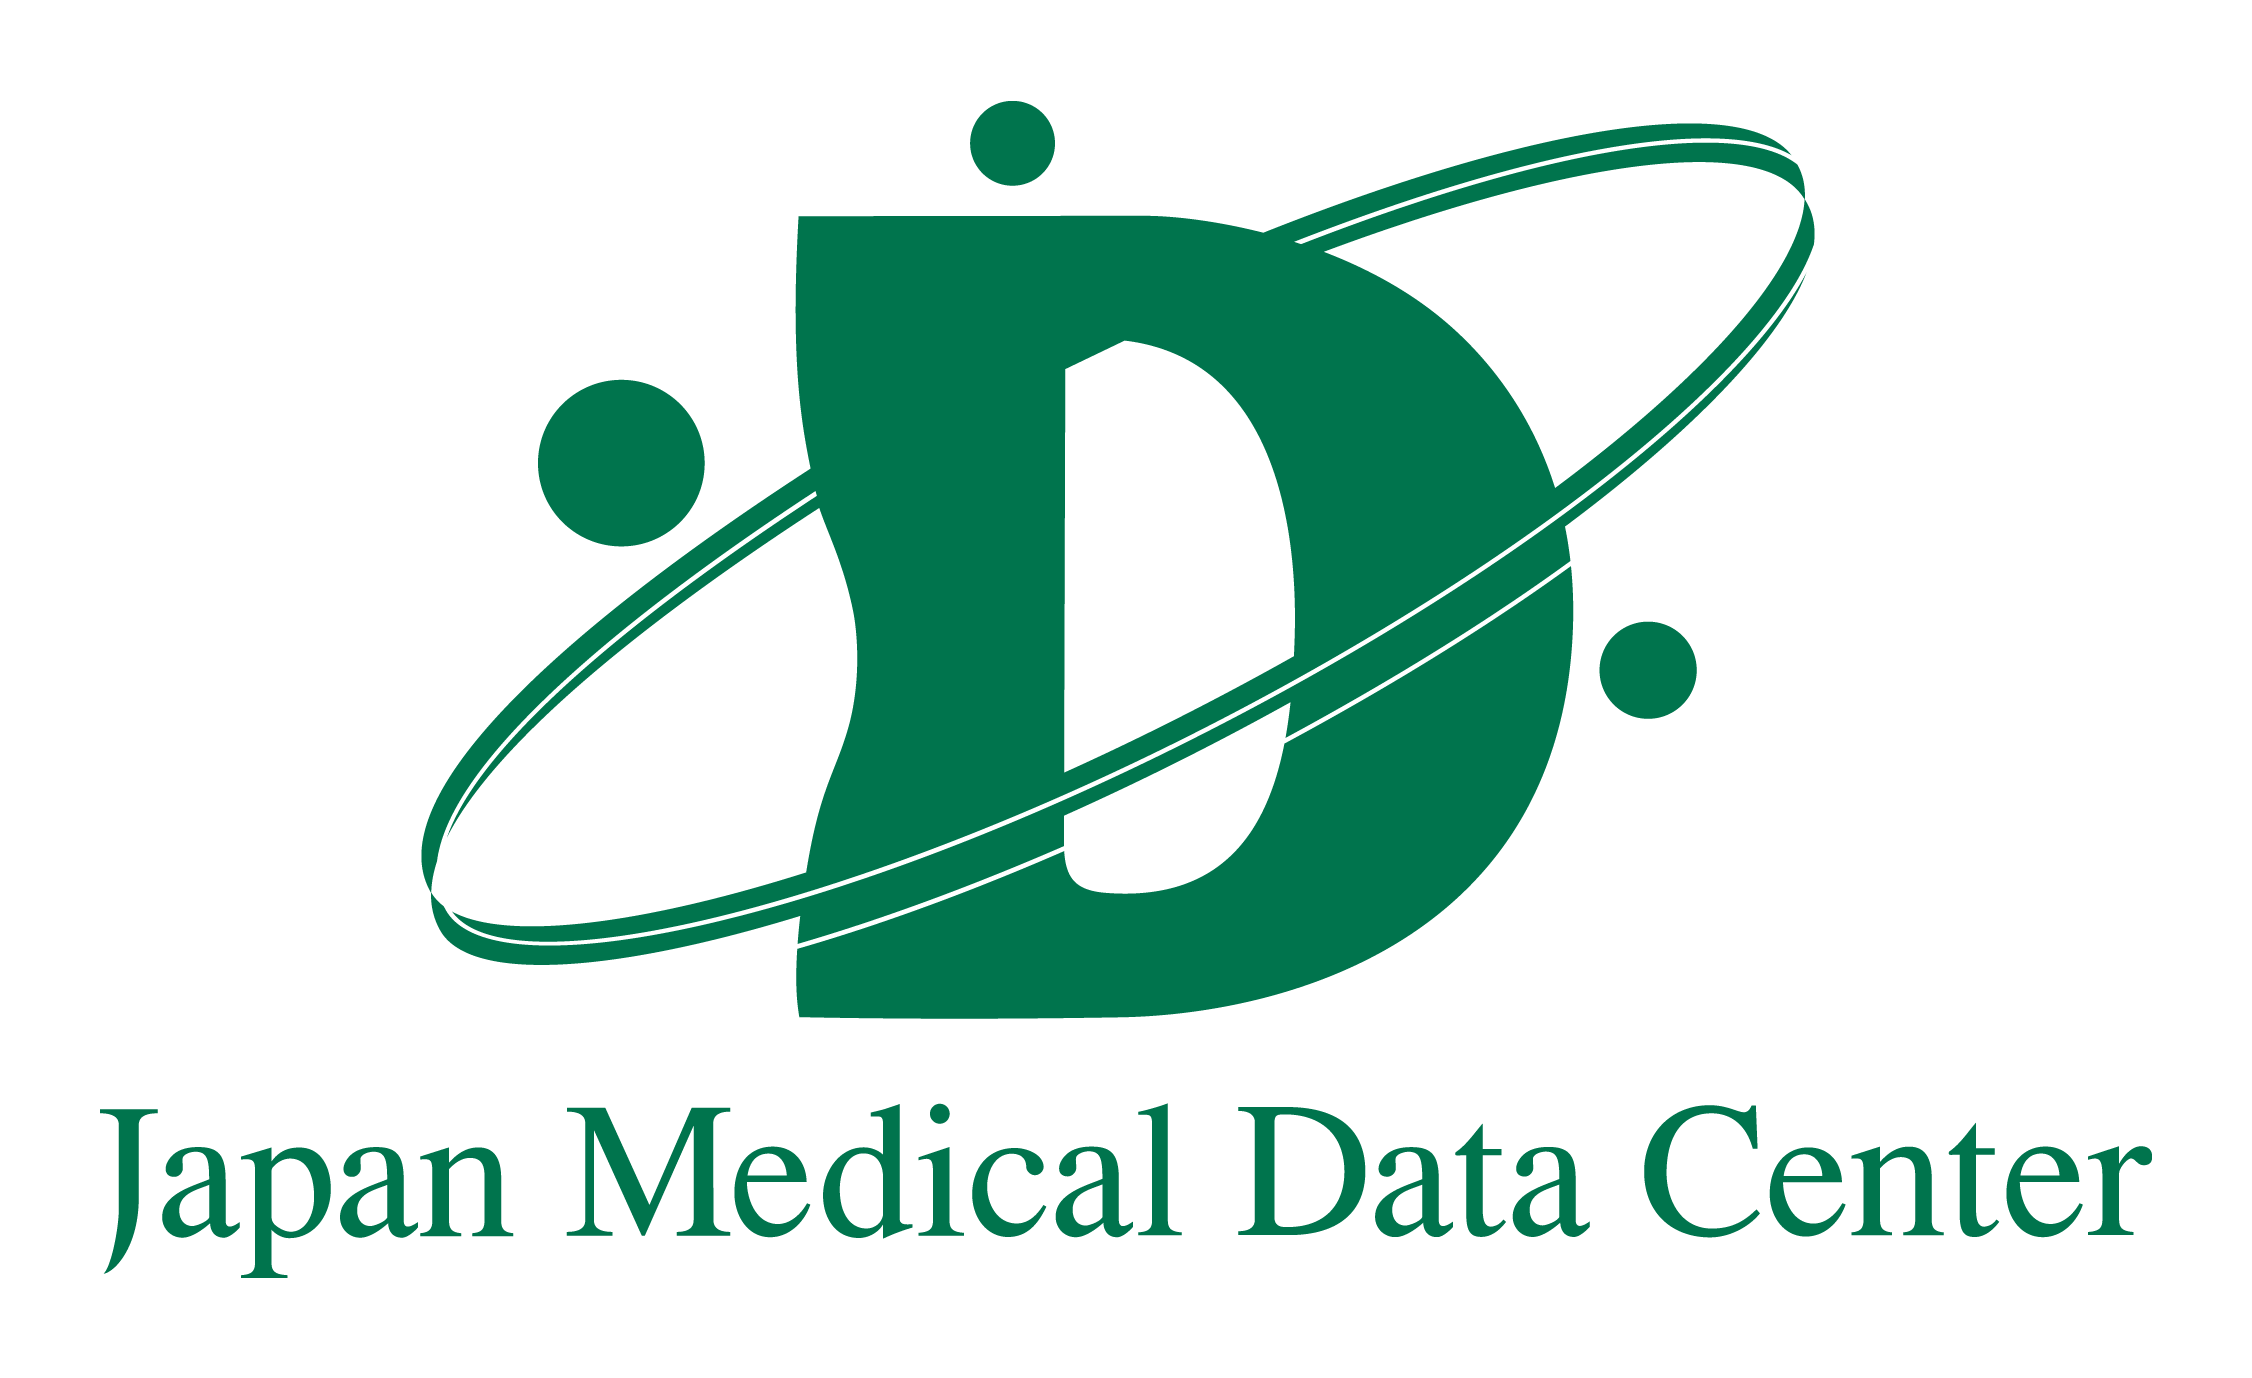 Japan Medical Data Center Logo